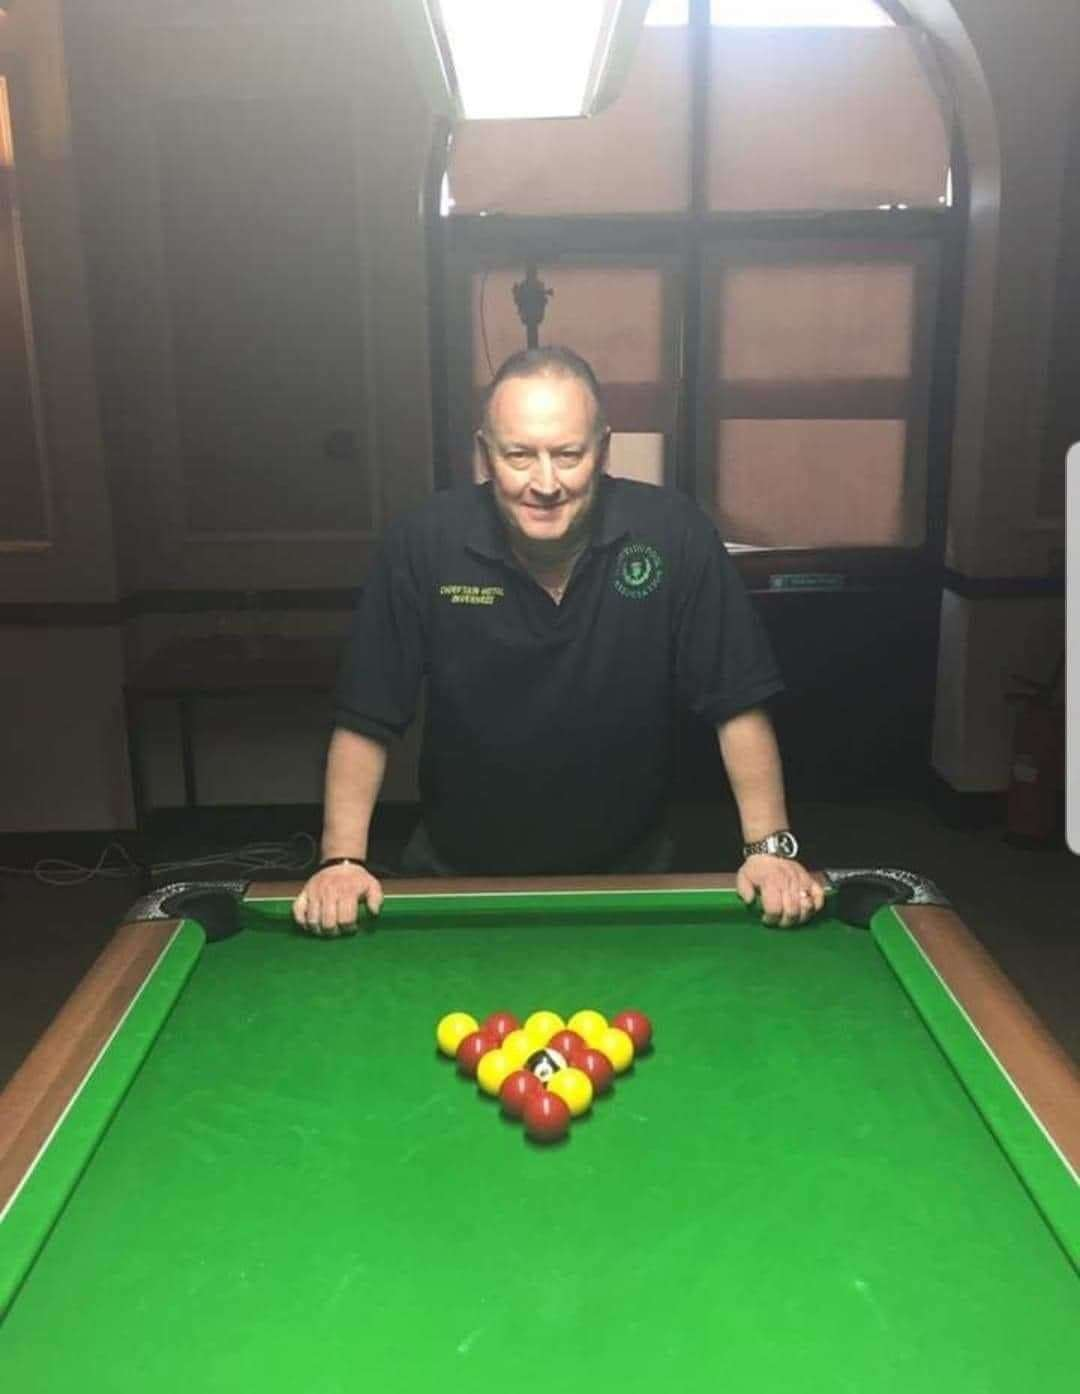 World champion pool player Gavin Phillips.